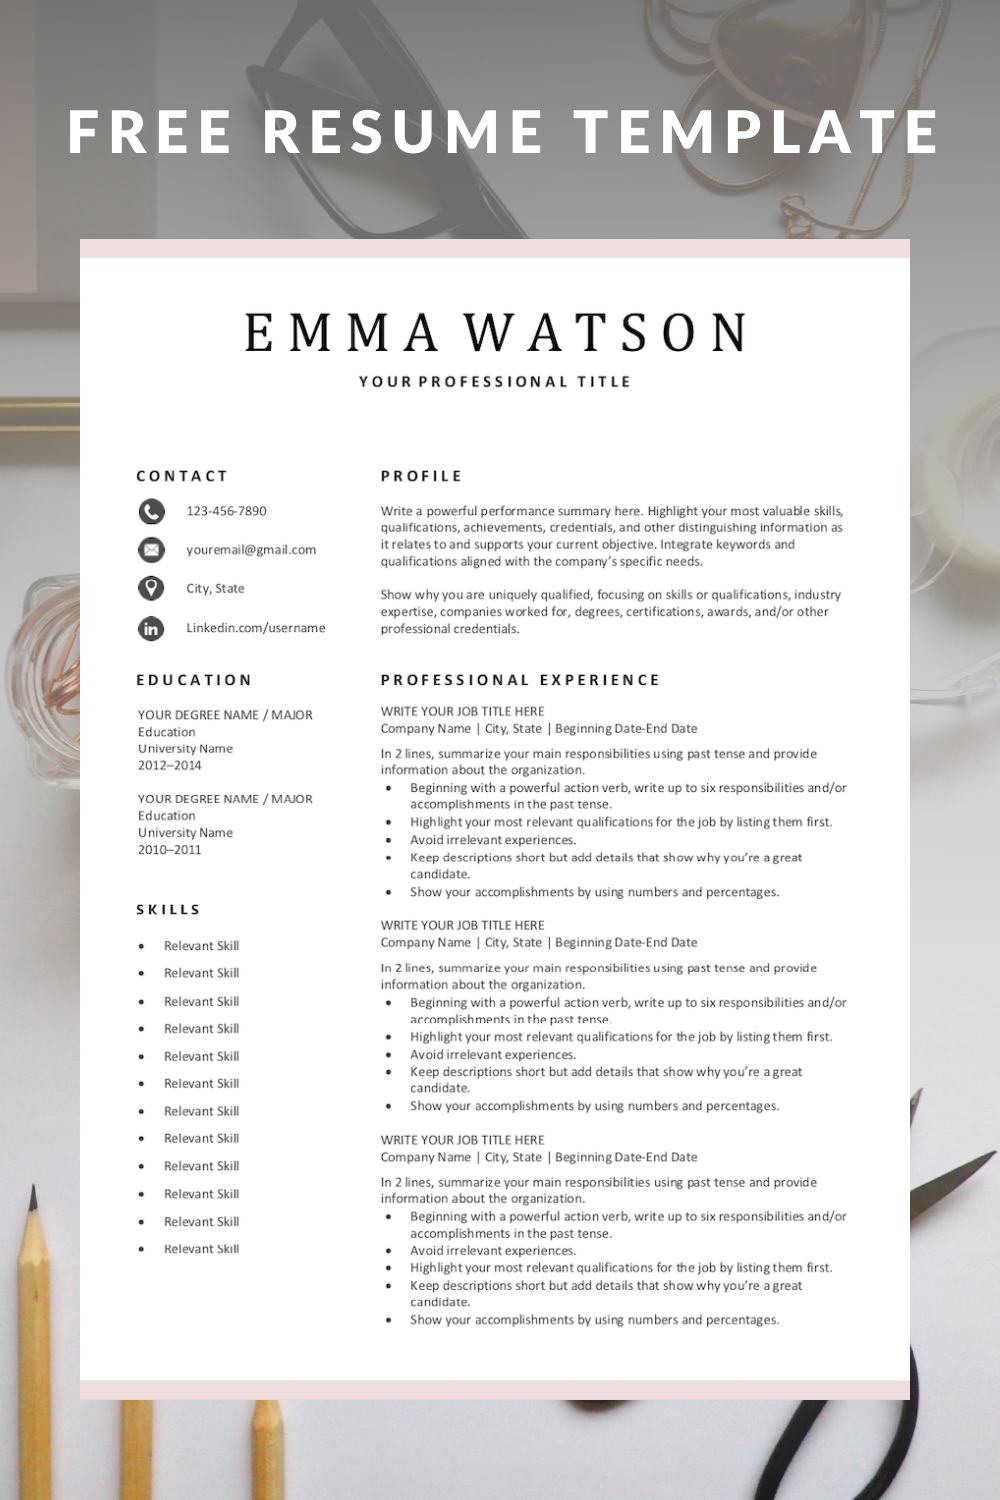 Free Simple Resume Template Download for Free in 2020